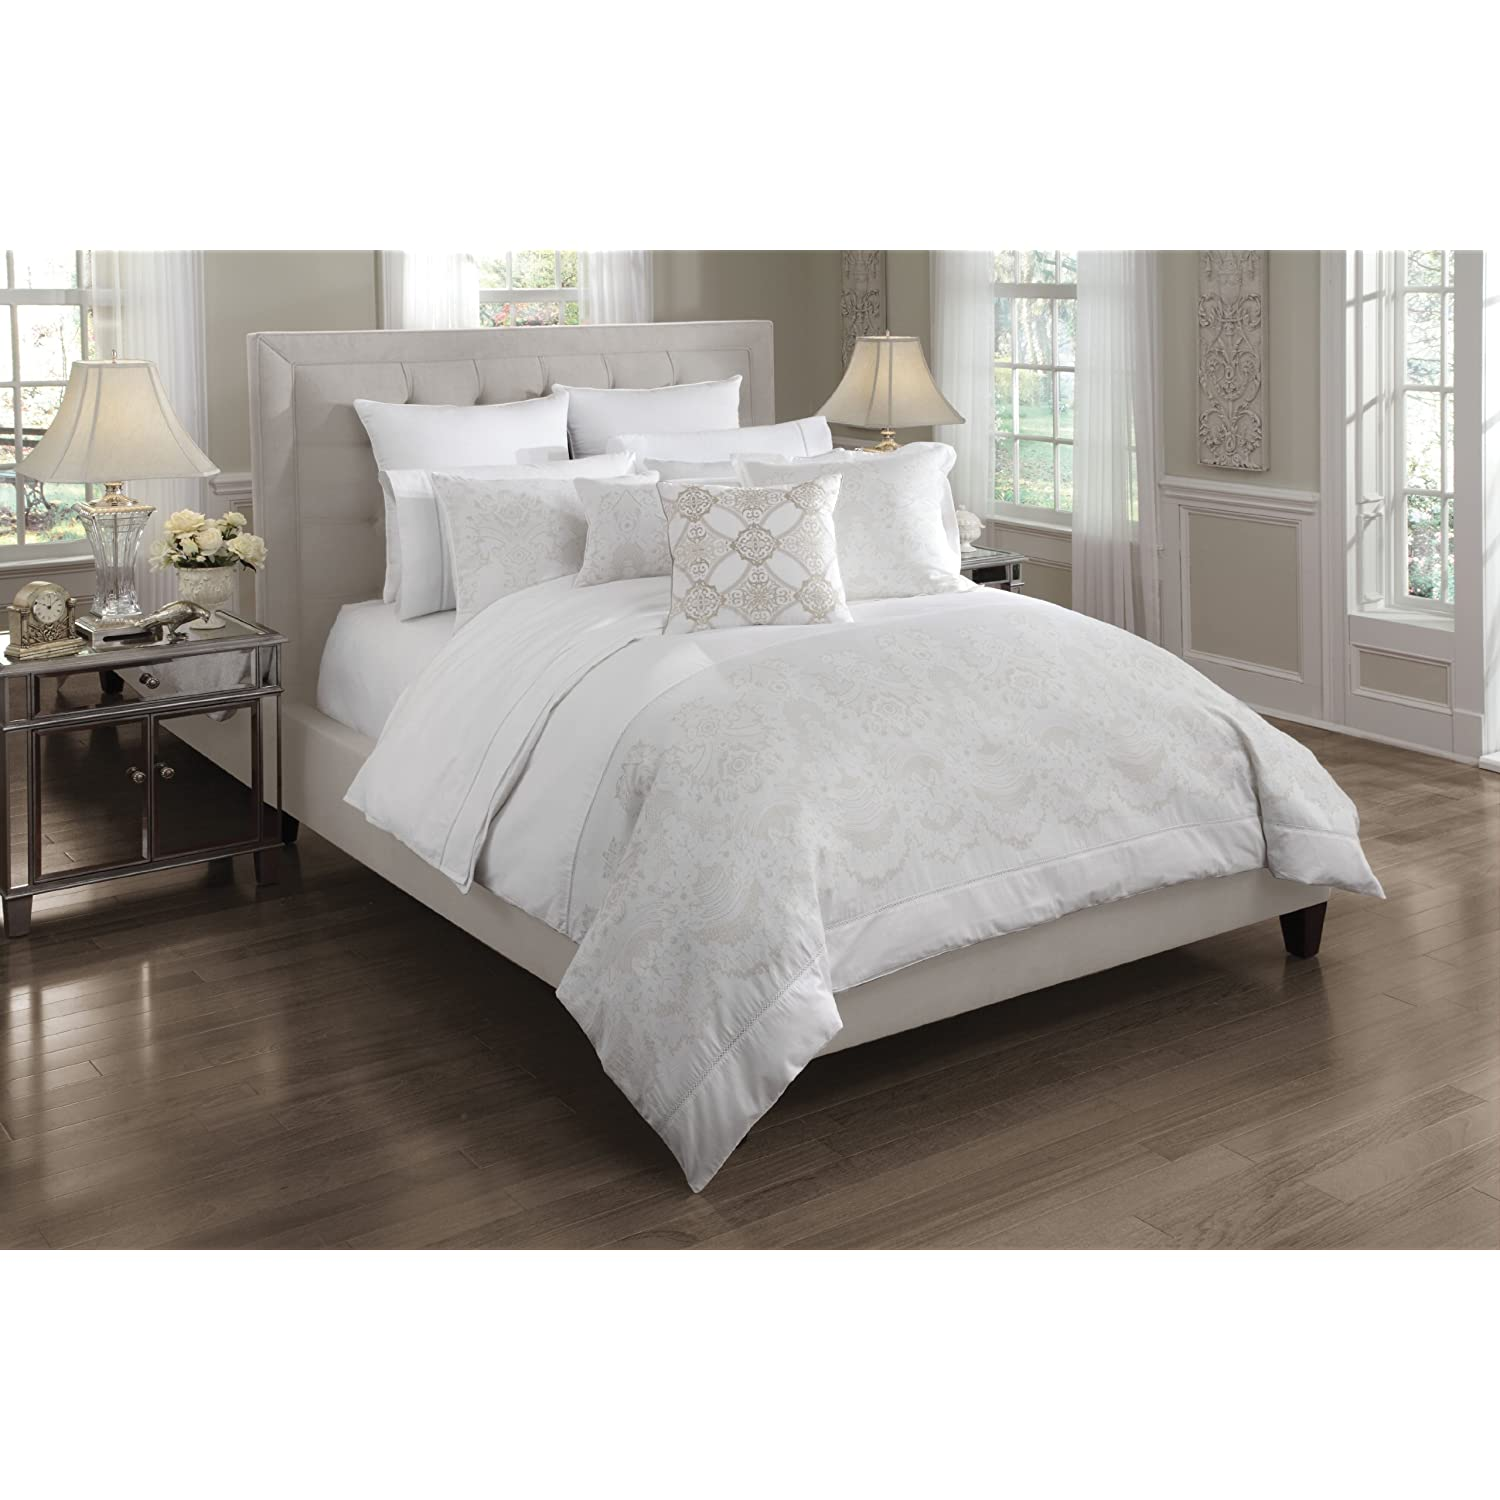 all white bed set 28 images bedding white feather down bed comforter twin size bed all. Black Bedroom Furniture Sets. Home Design Ideas